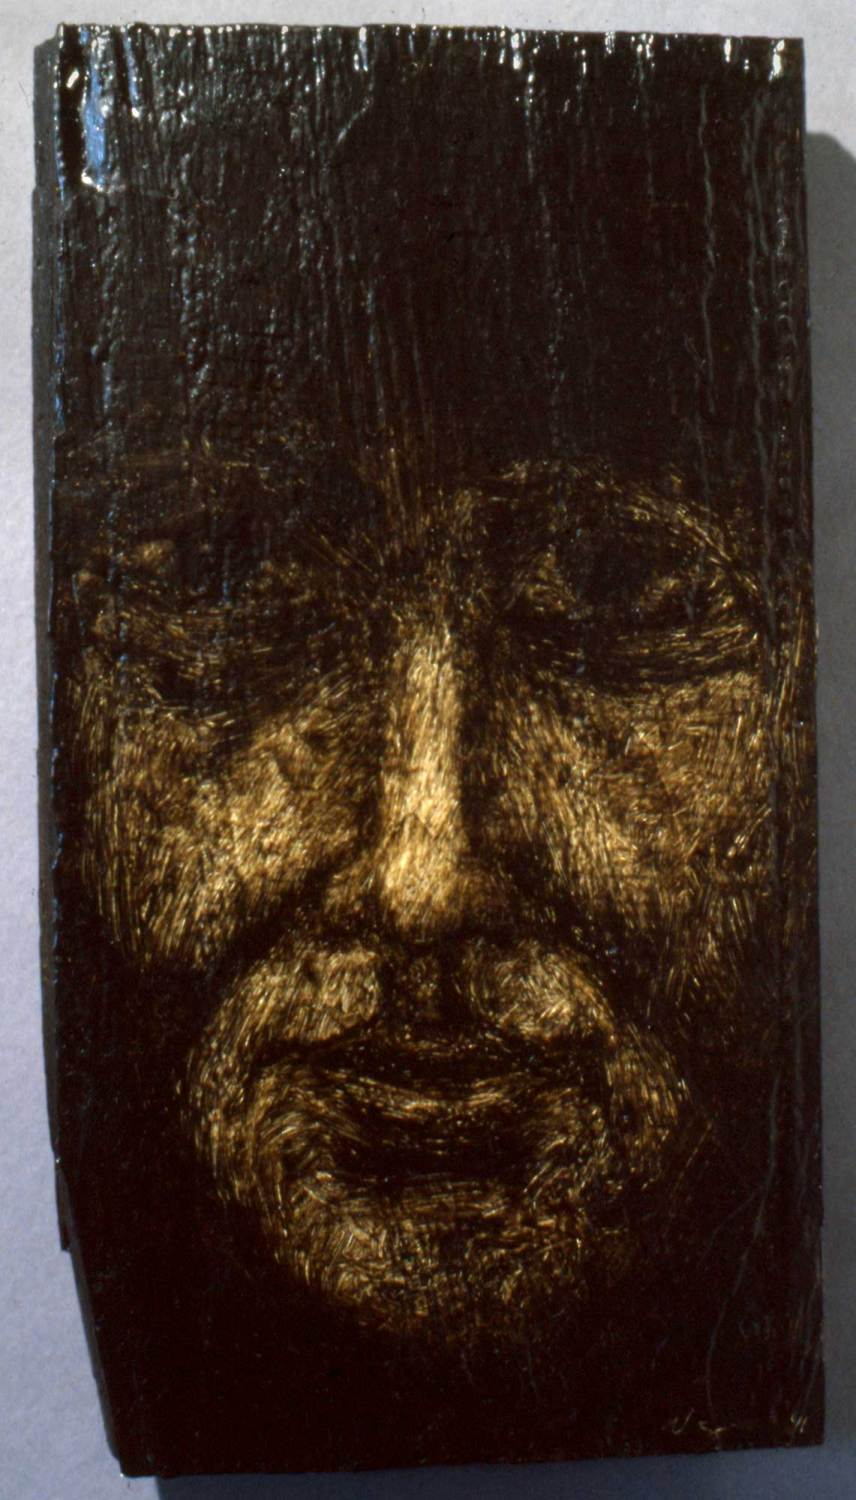 Fragment No. 1, oil on wood, approx. 9 inches tall, 1991, private collection